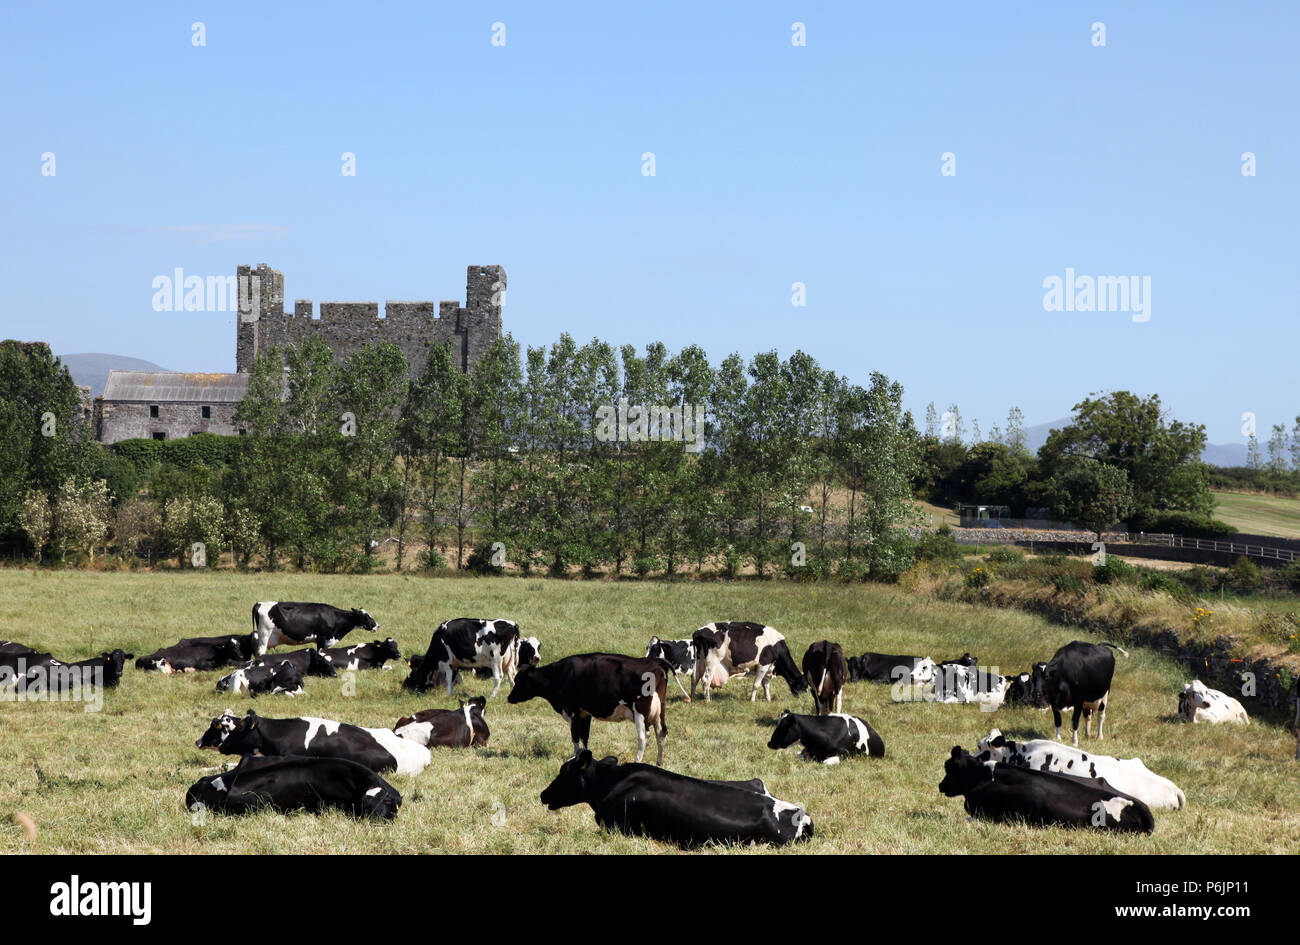 Herd of milking cows in pasture, Greencastle, Co. Down, Northern Ireland - Stock Image